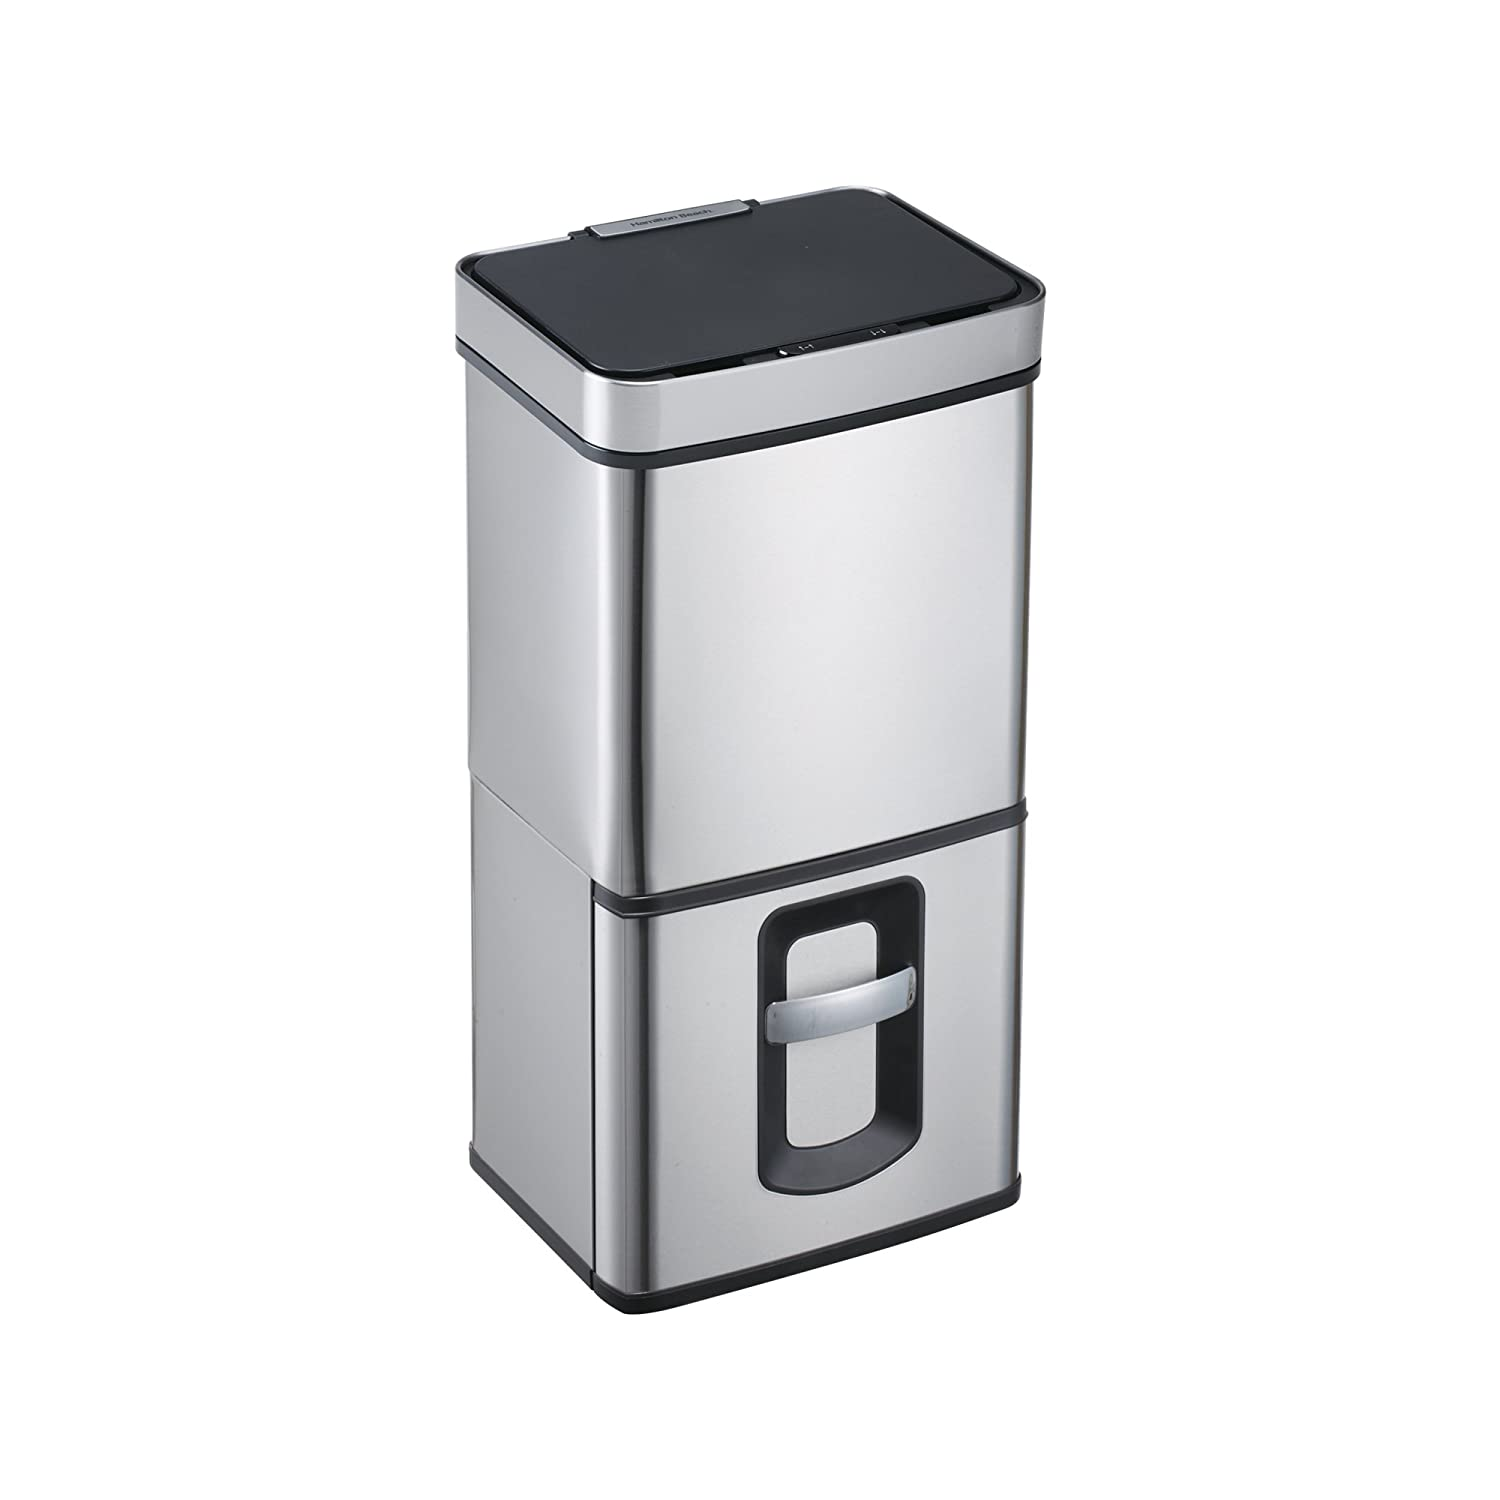 Trash Bin with Sensor Lid and gal Brushed Detroit Mall 20 Drawer Popular overseas Recycling